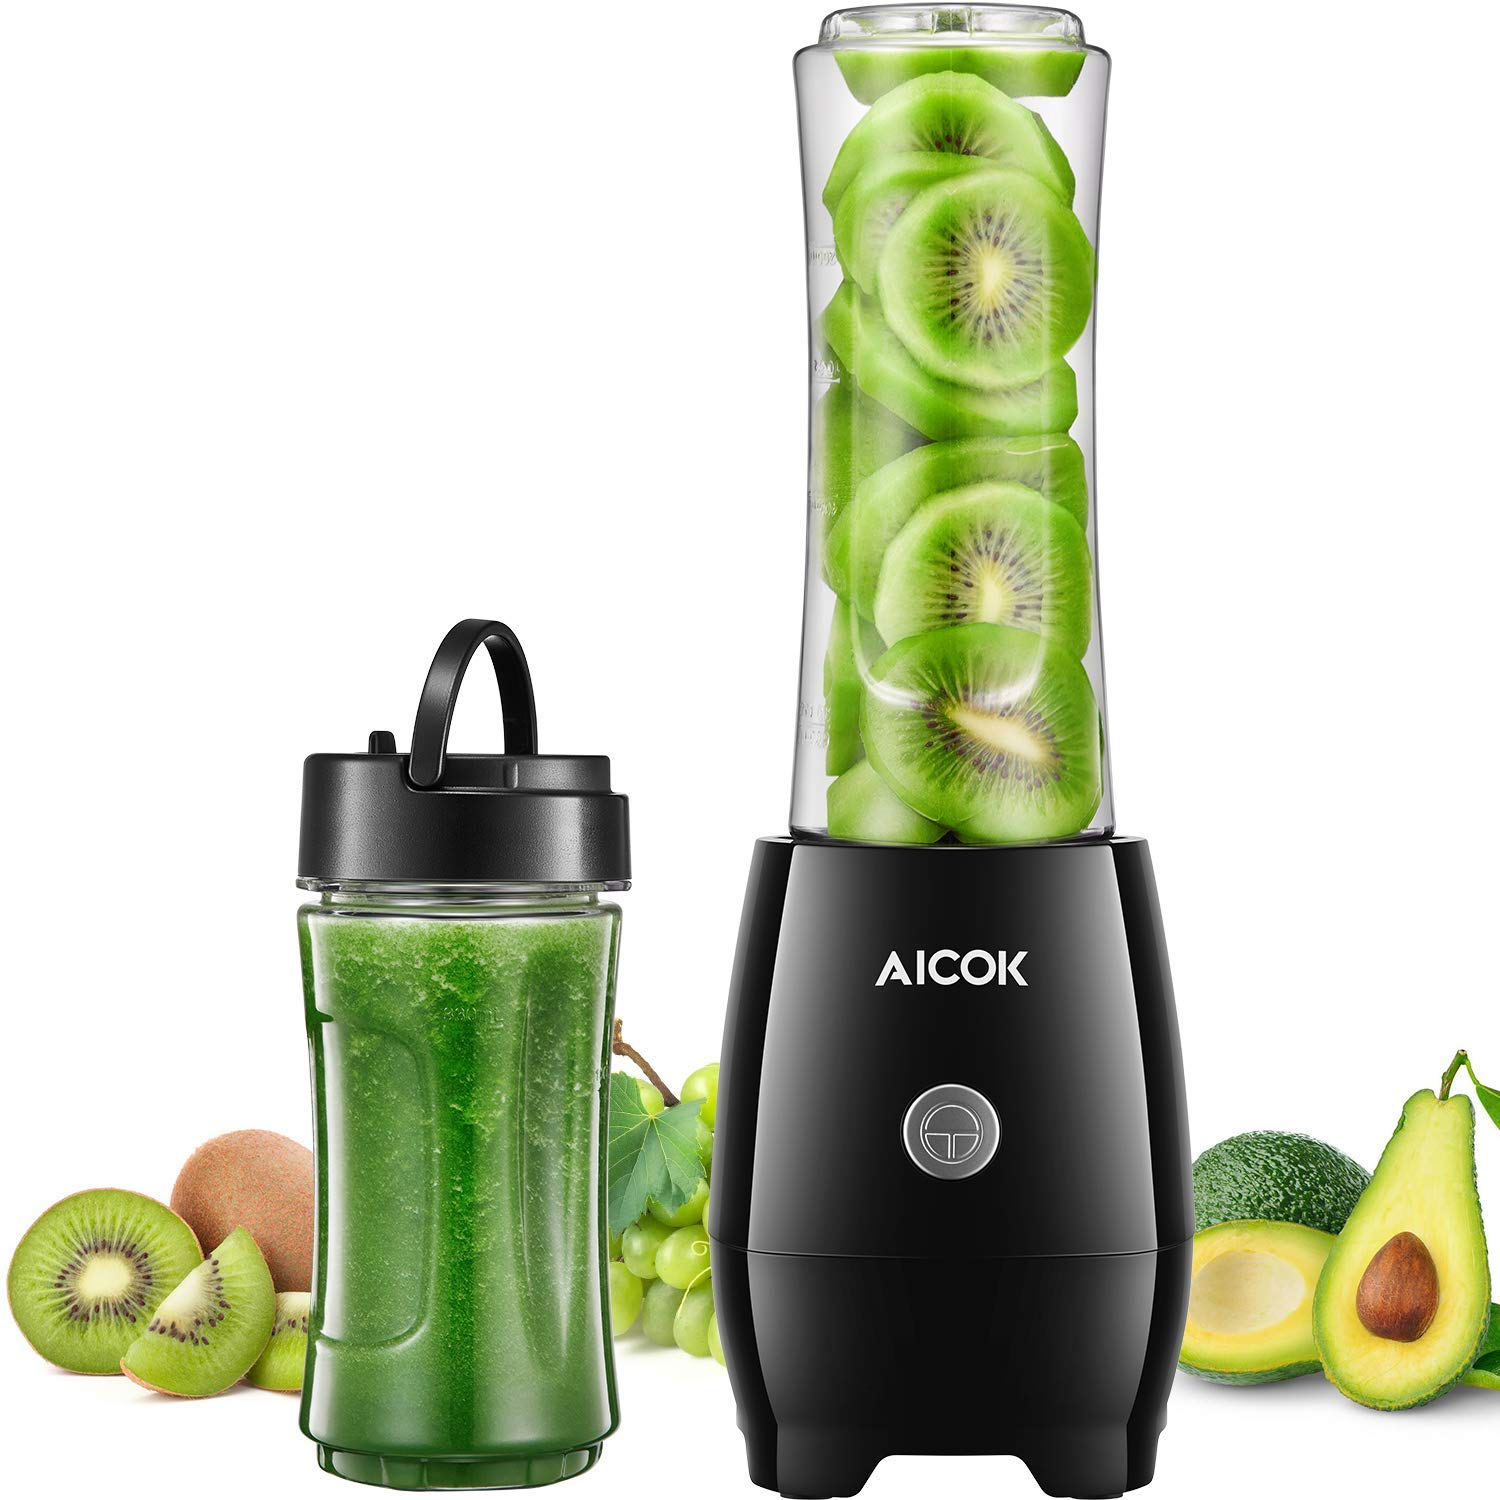 Aicok Blender Smoothie Maker